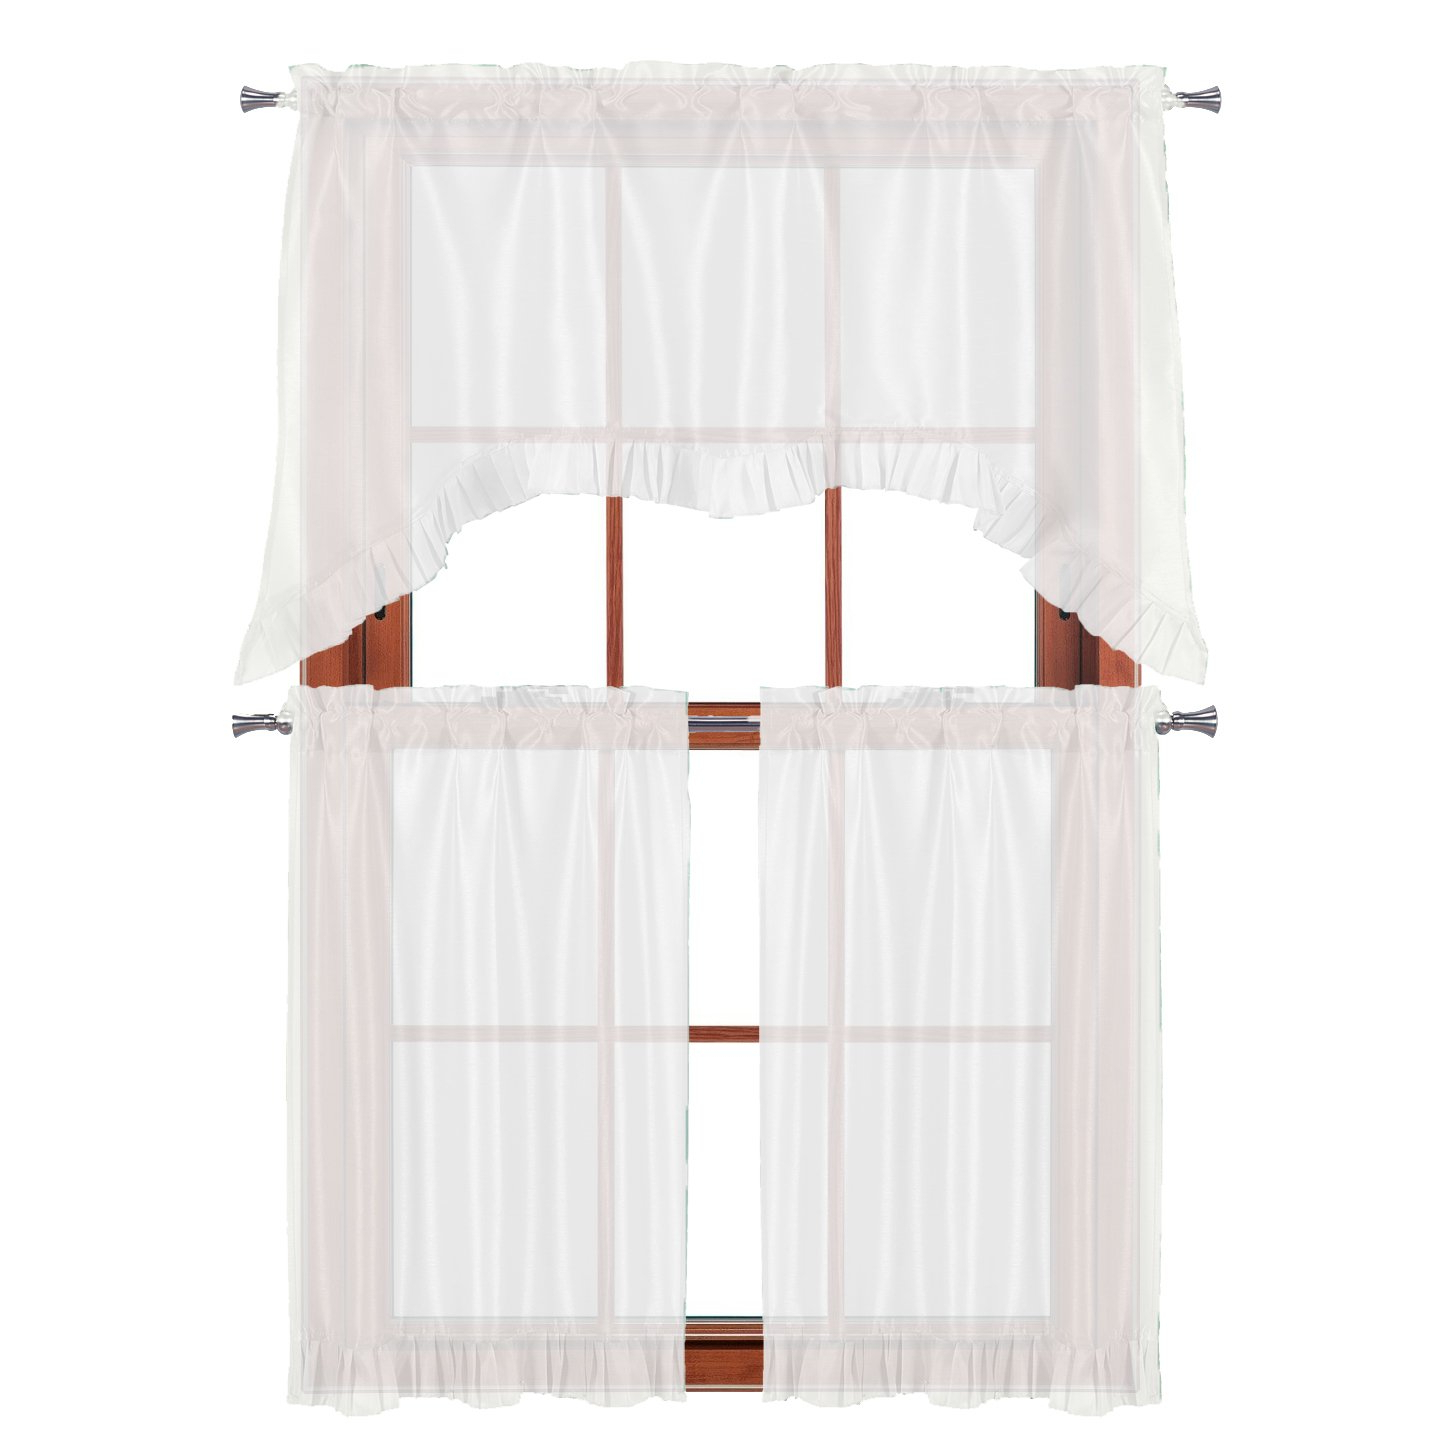 """Pleated Curtain Tiers Within Most Up To Date 3 Pc Window Curtain Set: Pleated Ruffle, 1 Swag Valance, 2 36""""l Tiers Panels (white) (View 10 of 20)"""